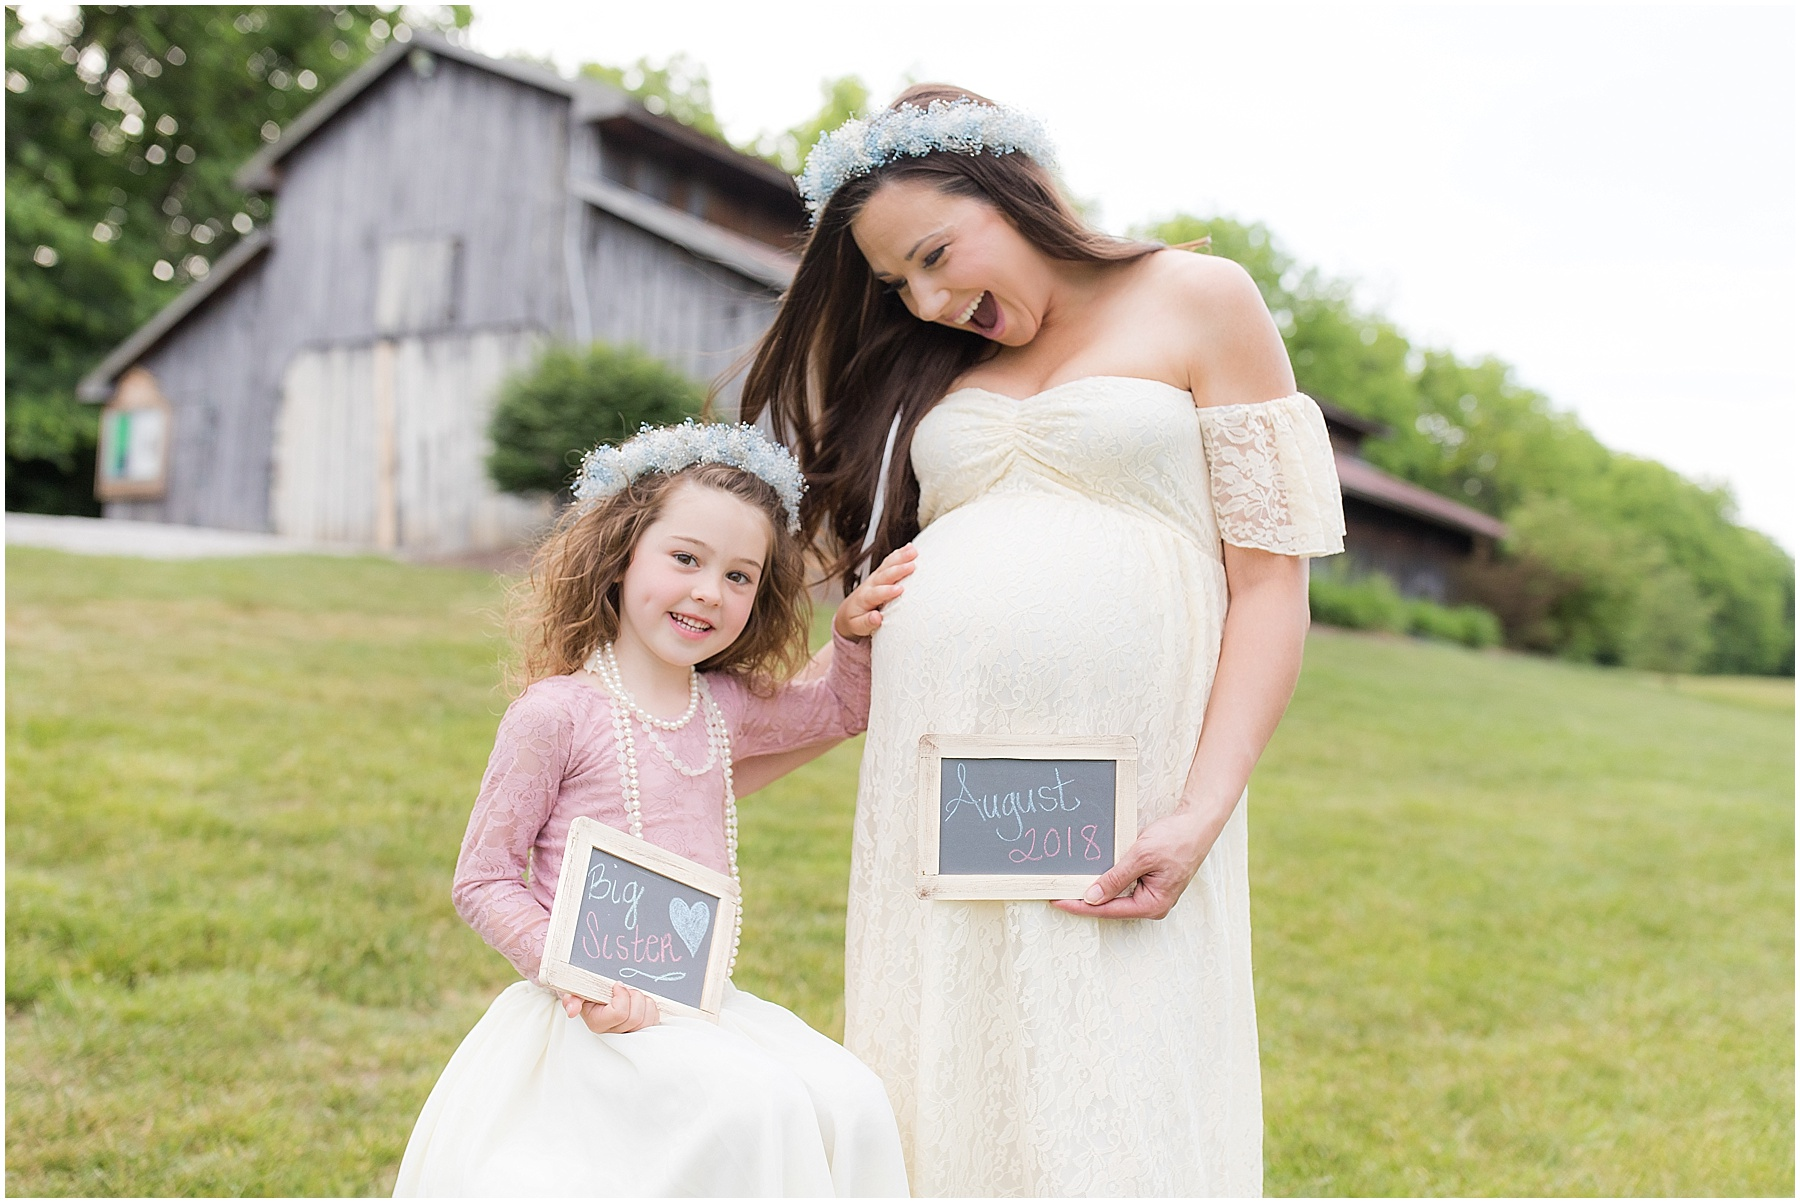 Mother and her little girl excited about baby sister coming in August